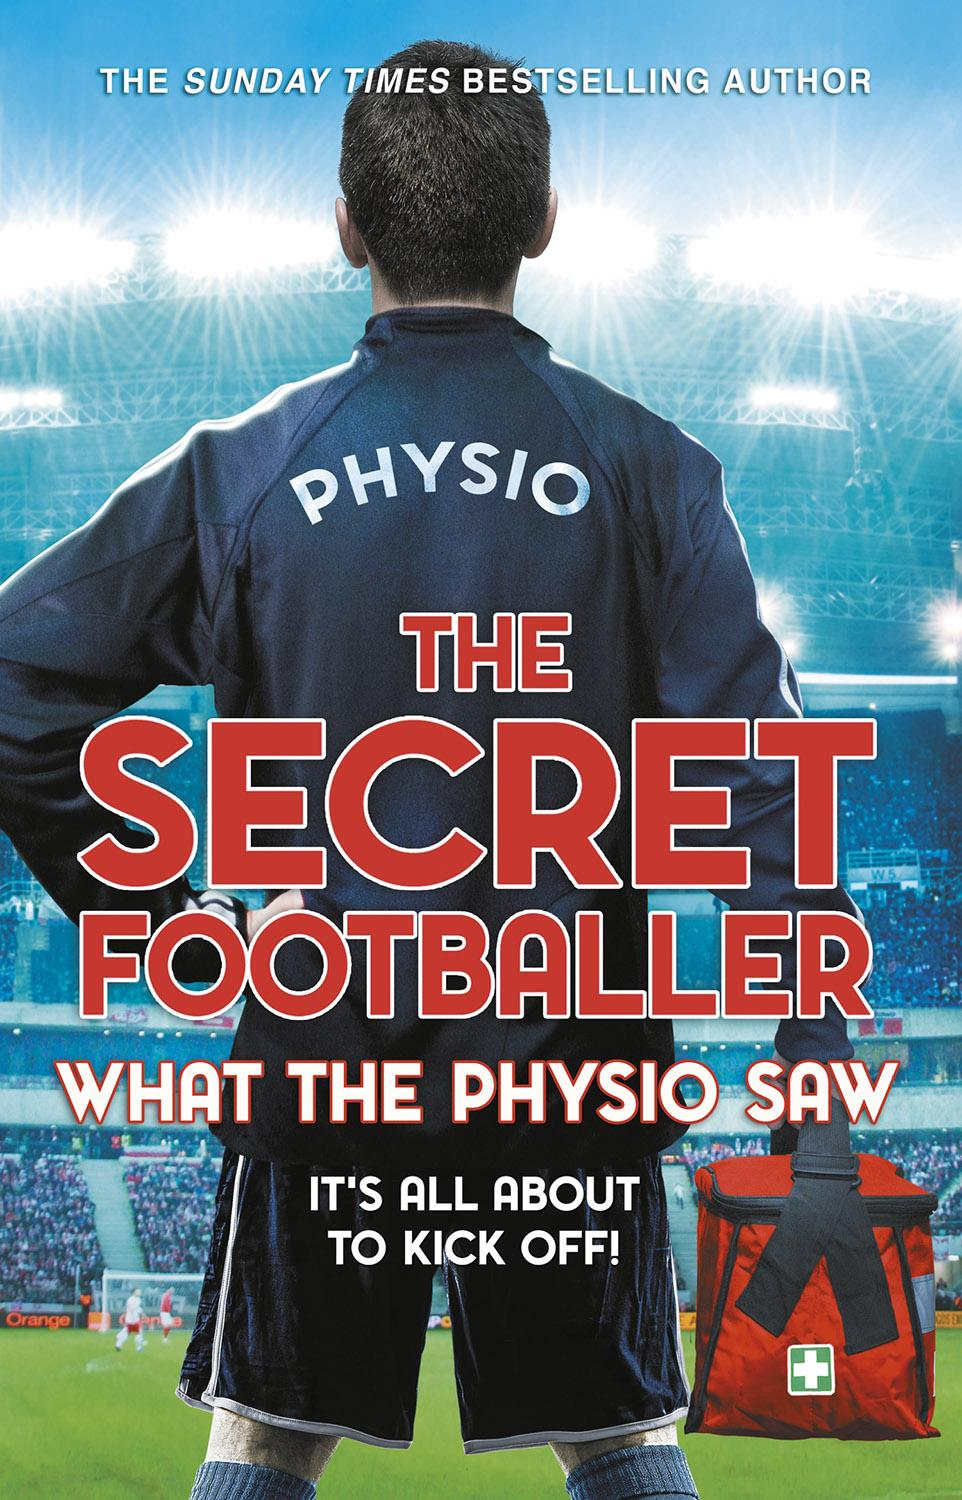 The Secret Footballer: What the Physio Saw... by The Secret Footballer